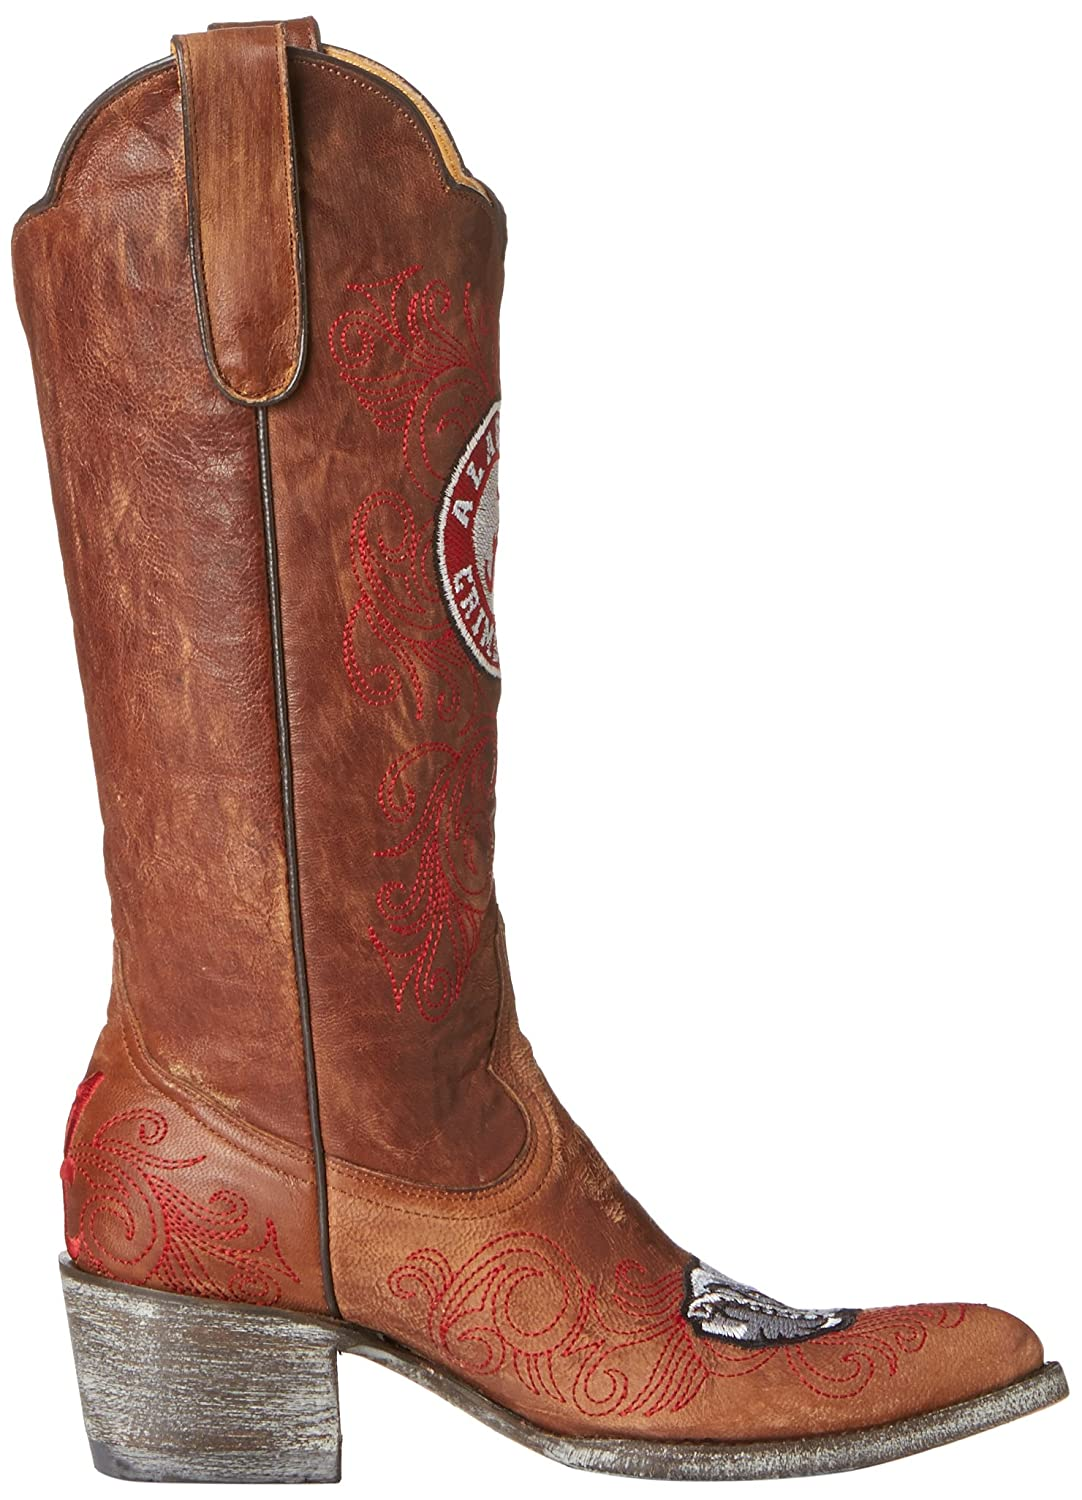 NCAA Alabama Crimson Tide B00A8O5KQC Women's 13-Inch Gameday Boots B00A8O5KQC Tide 5 B (M) US|Brass 382d17